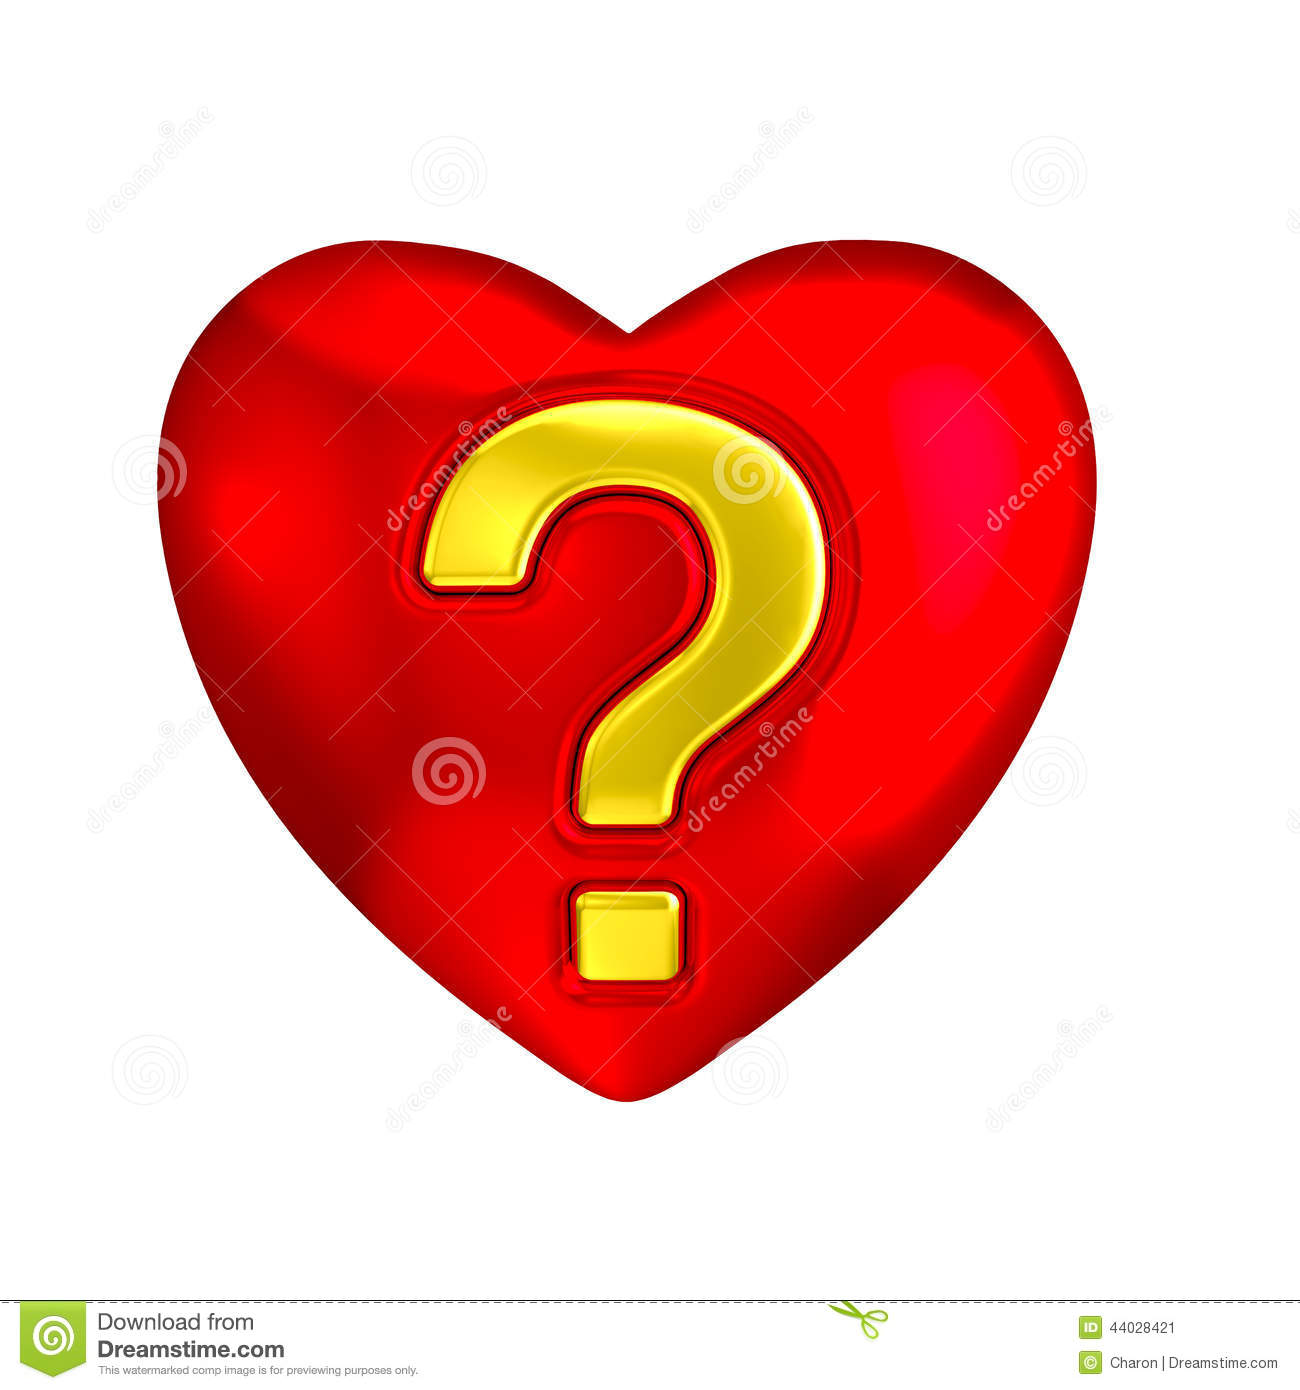 heart symbol with golden question mark inlay. Metaphor for question ...